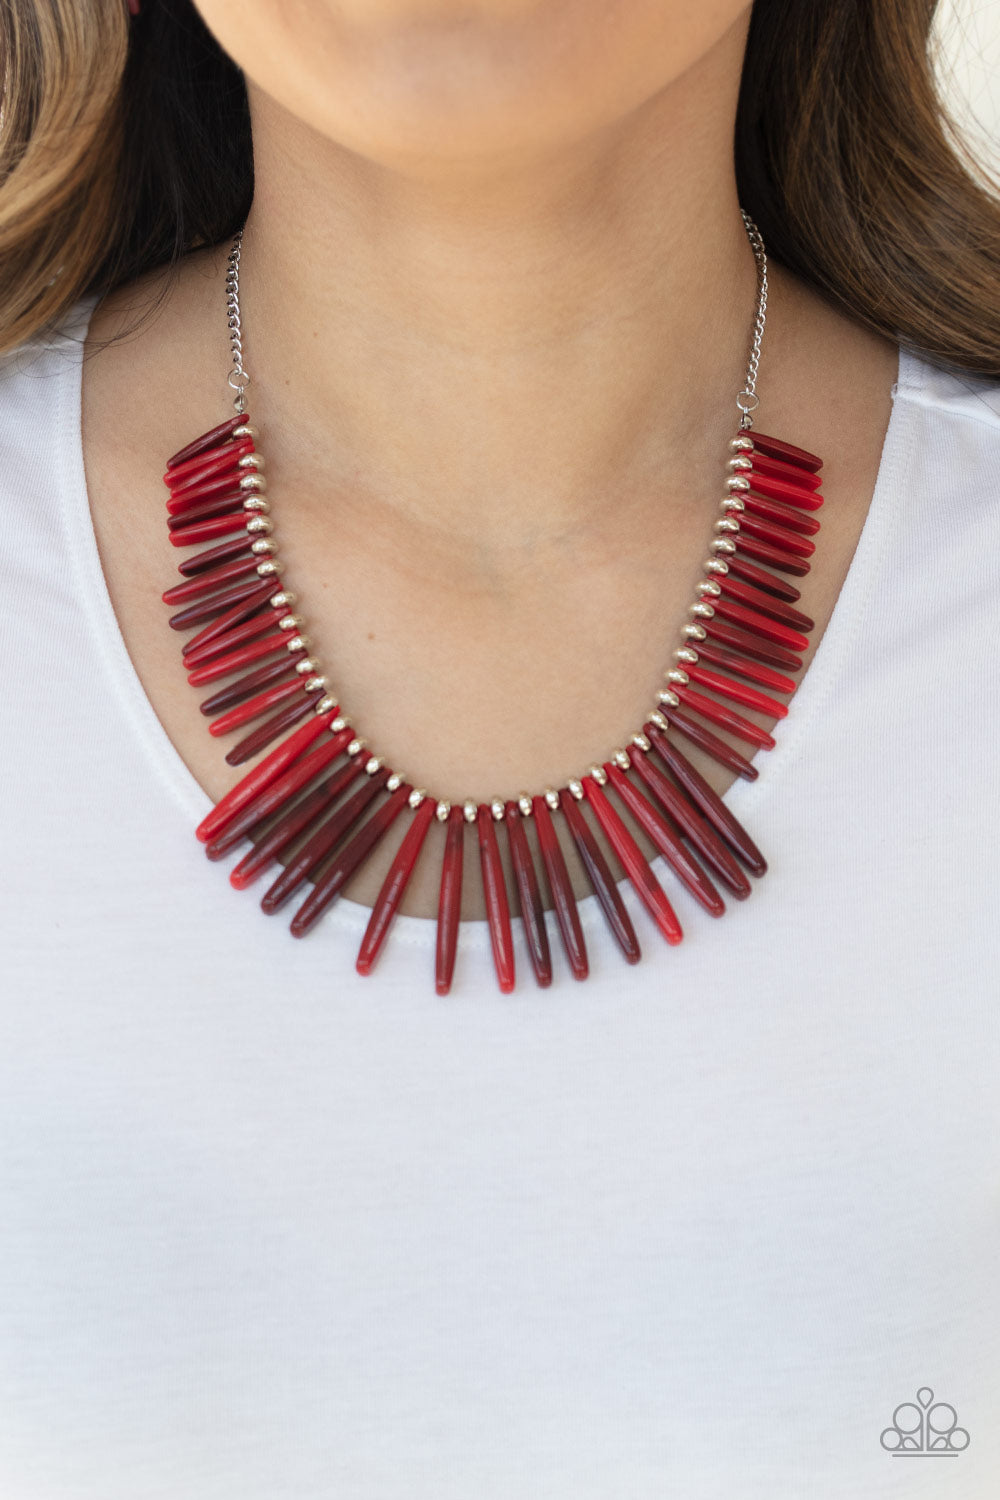 Out of My Element - Red - Paparazzi Accessories